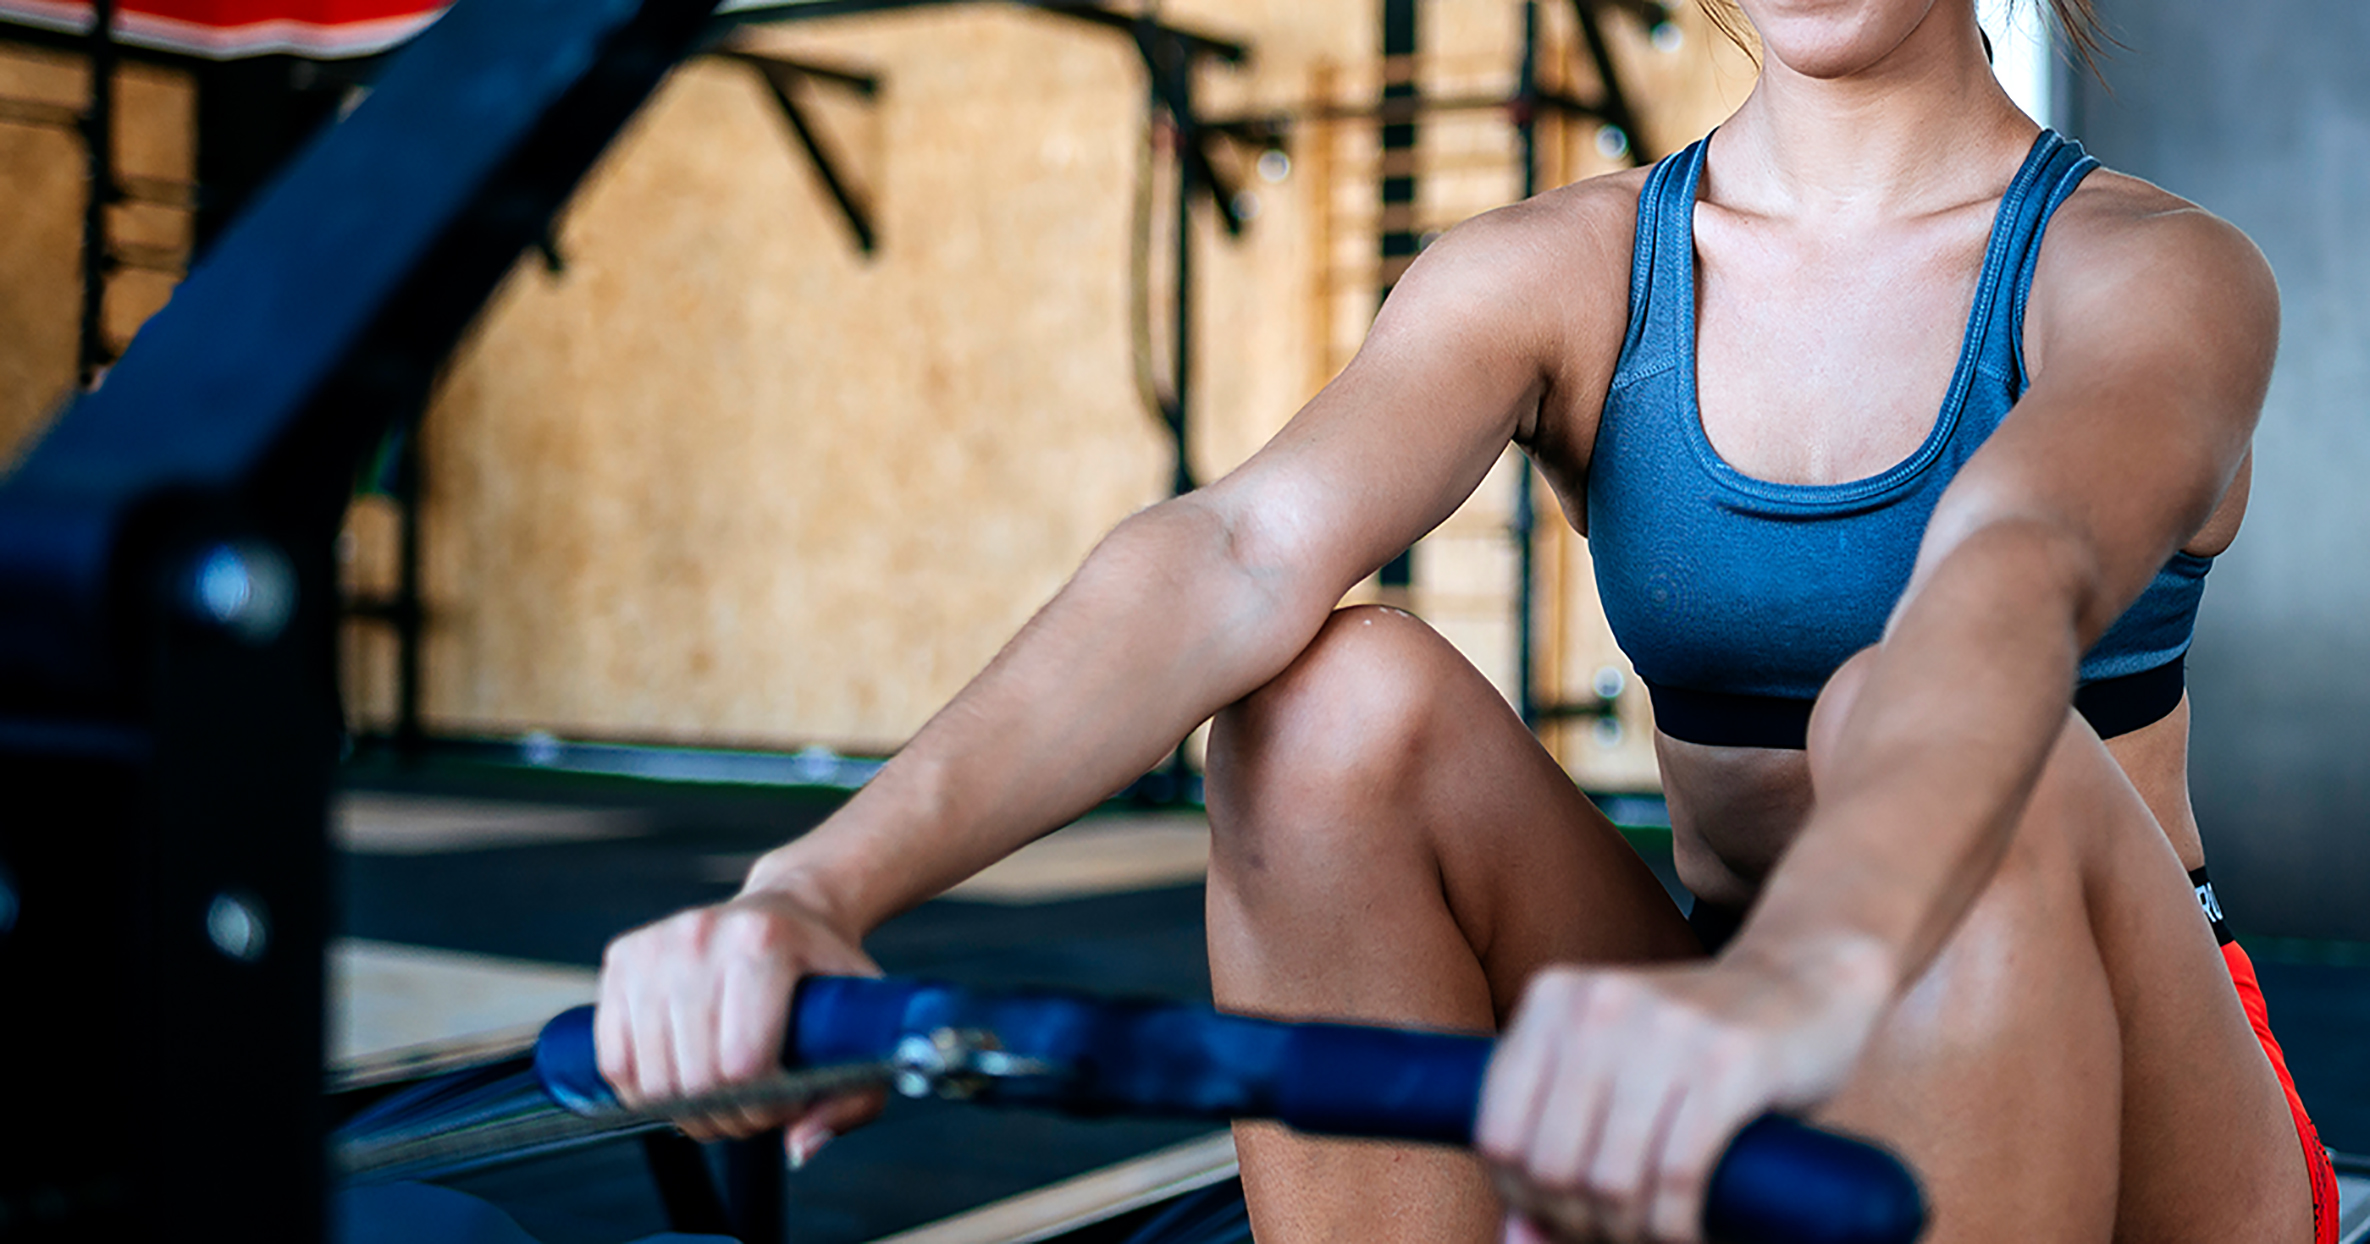 Reasons you choose the Rowing machine for your workouts